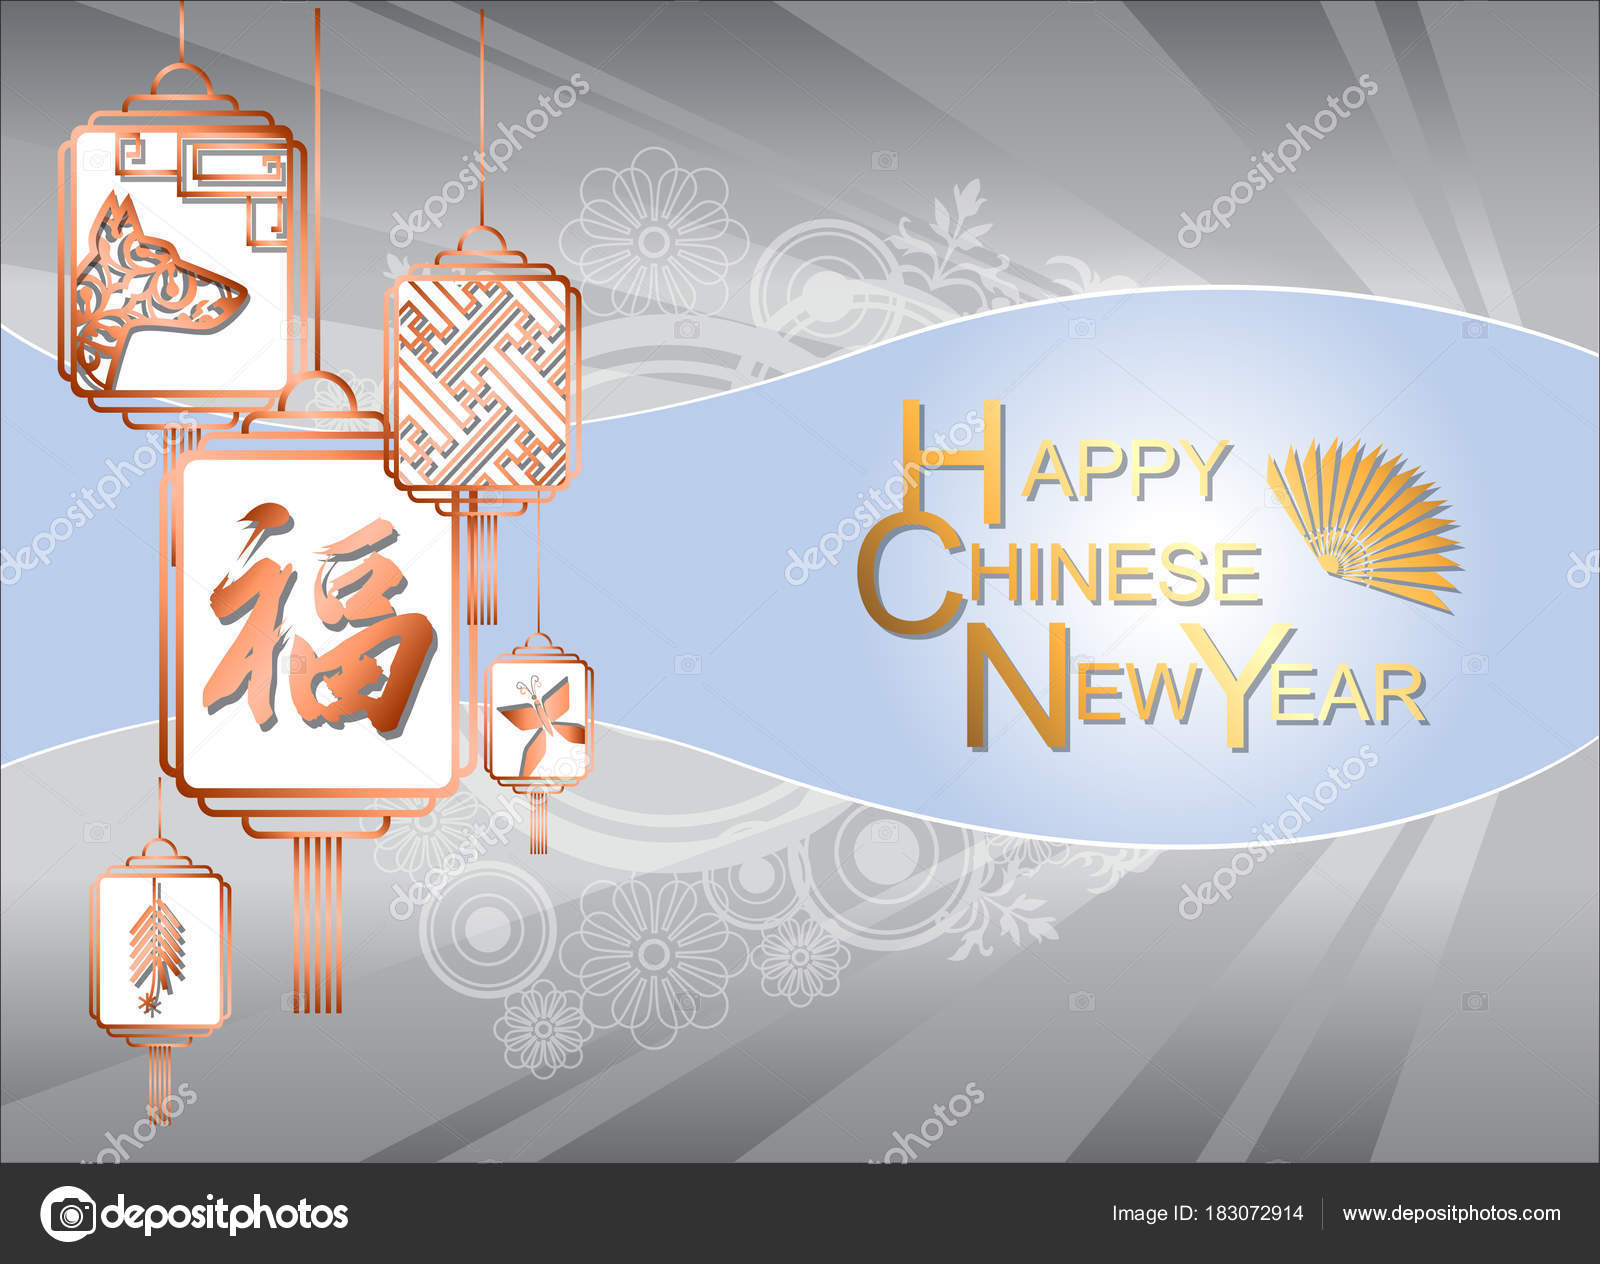 Abstract Chinese New Year Traditional Chinese Wording Meaning Lucky Happy Stock Vector C Legendofsinbatt Gmail Com 183072914